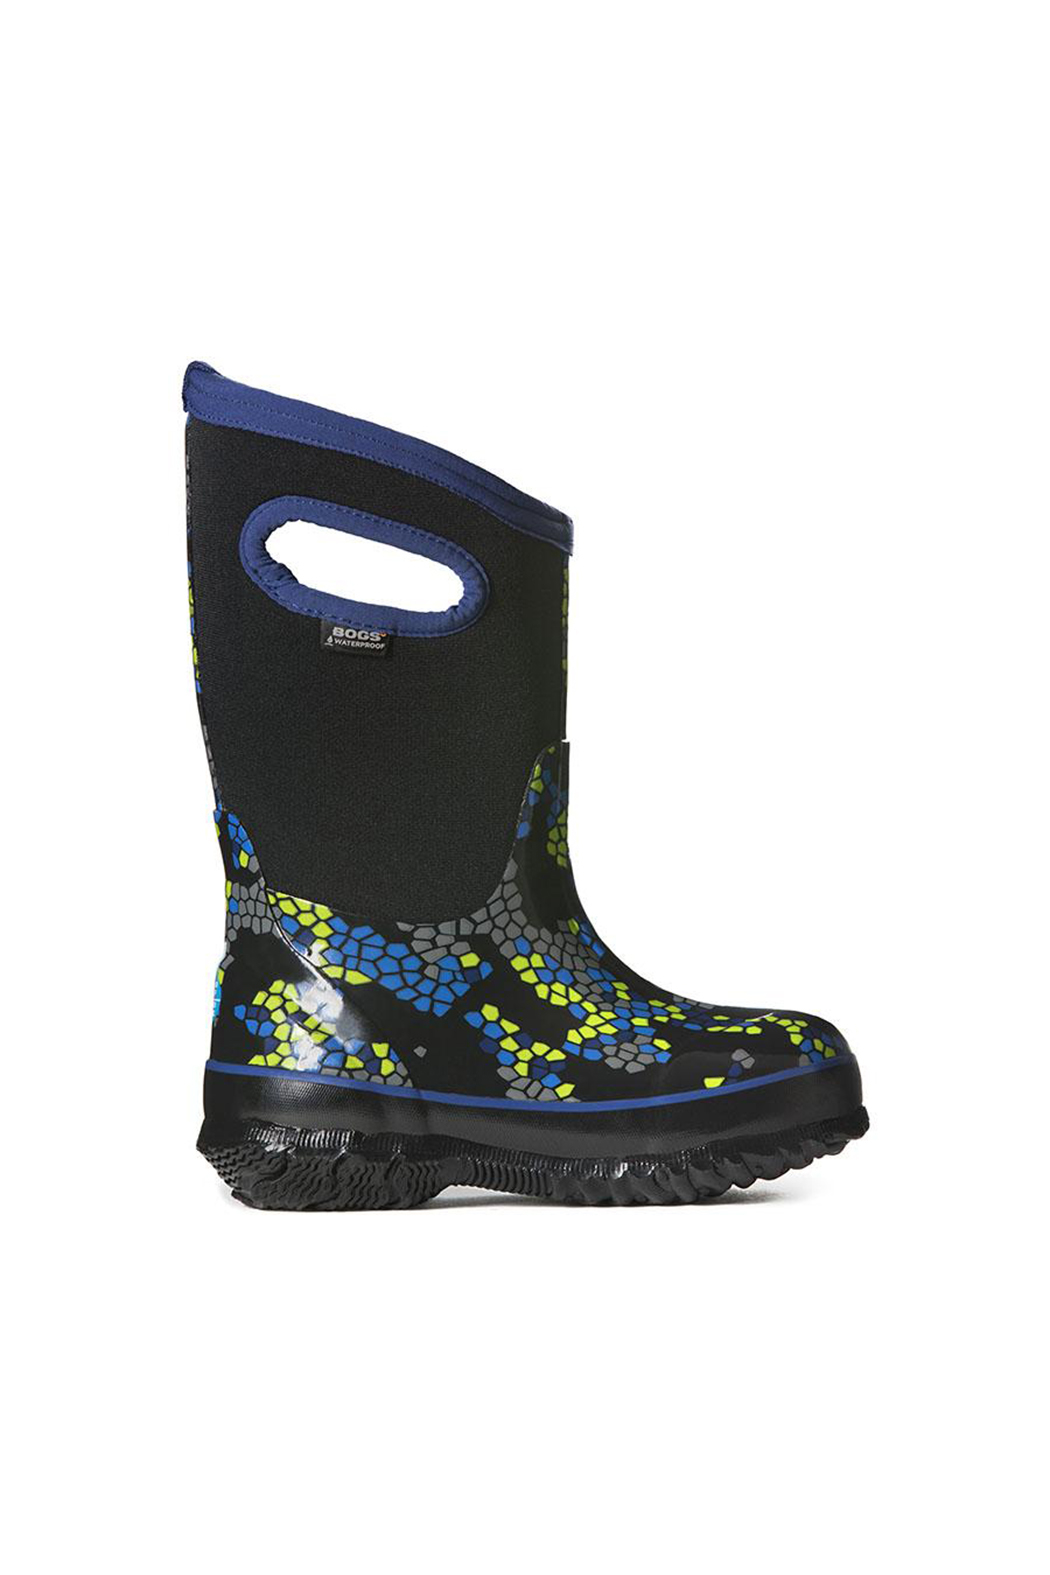 BOGS Classic Axel Kids Insulated Boots - Main Image